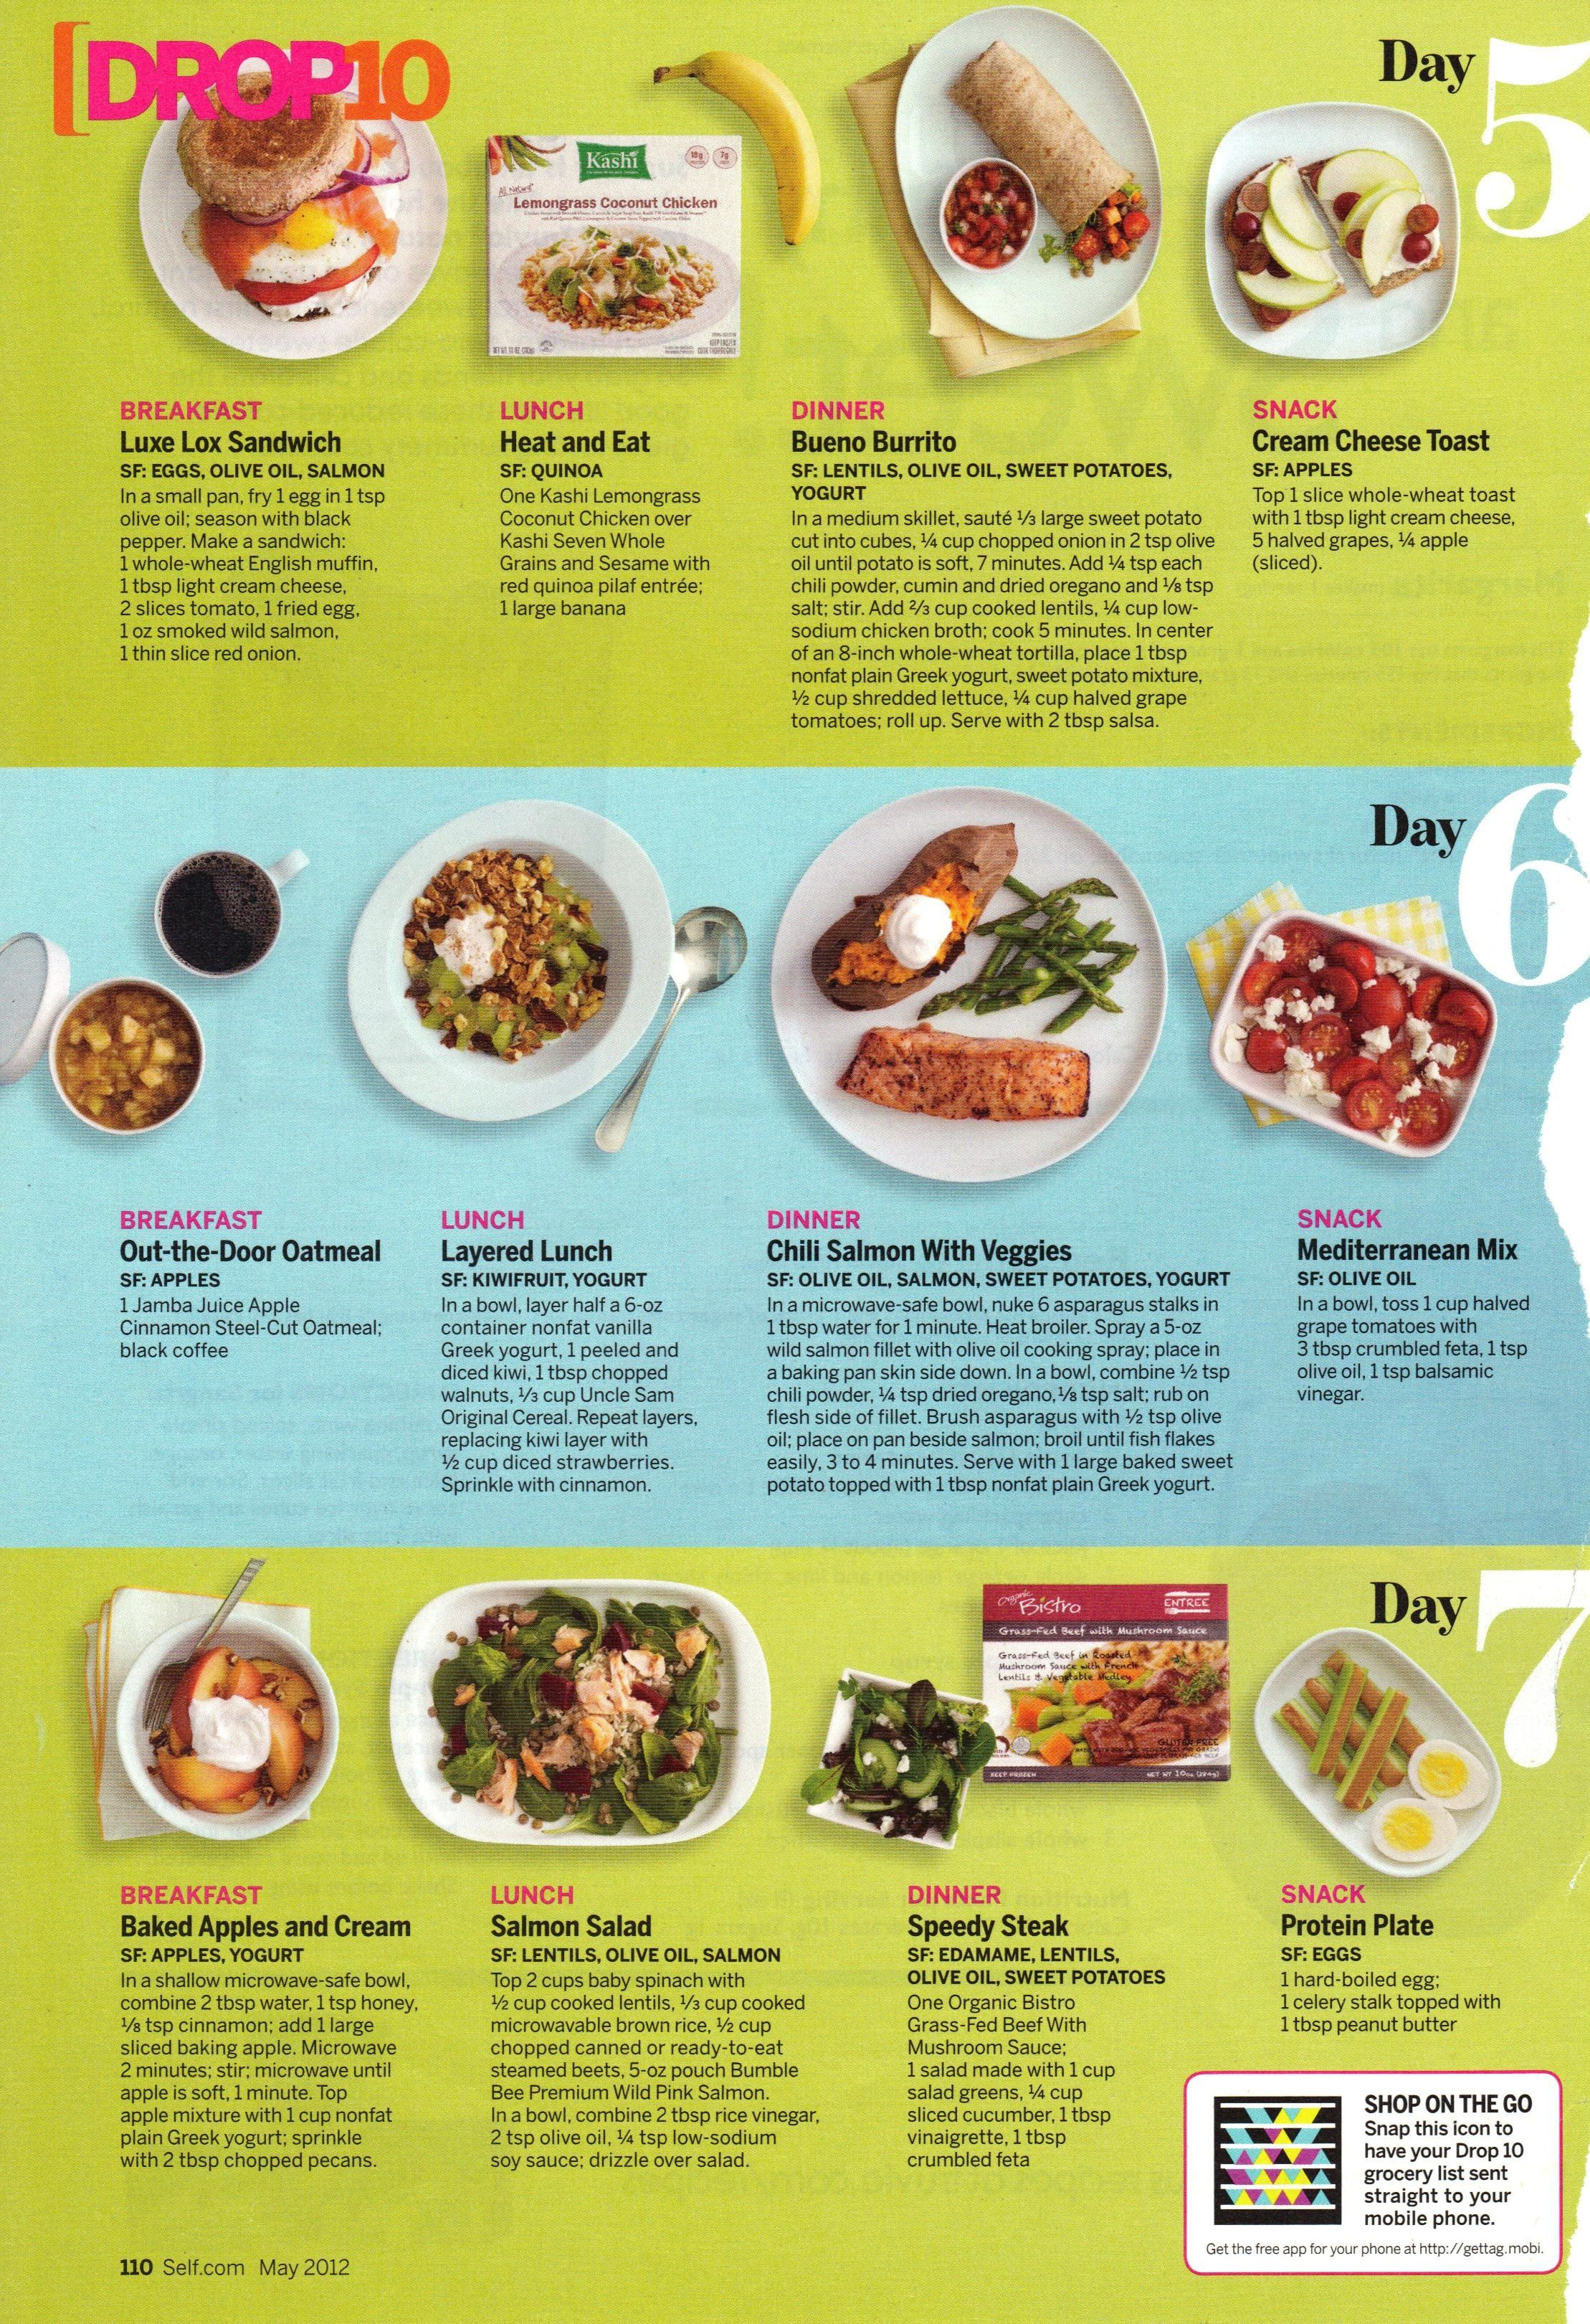 Dinner ideas to lose weight image 5